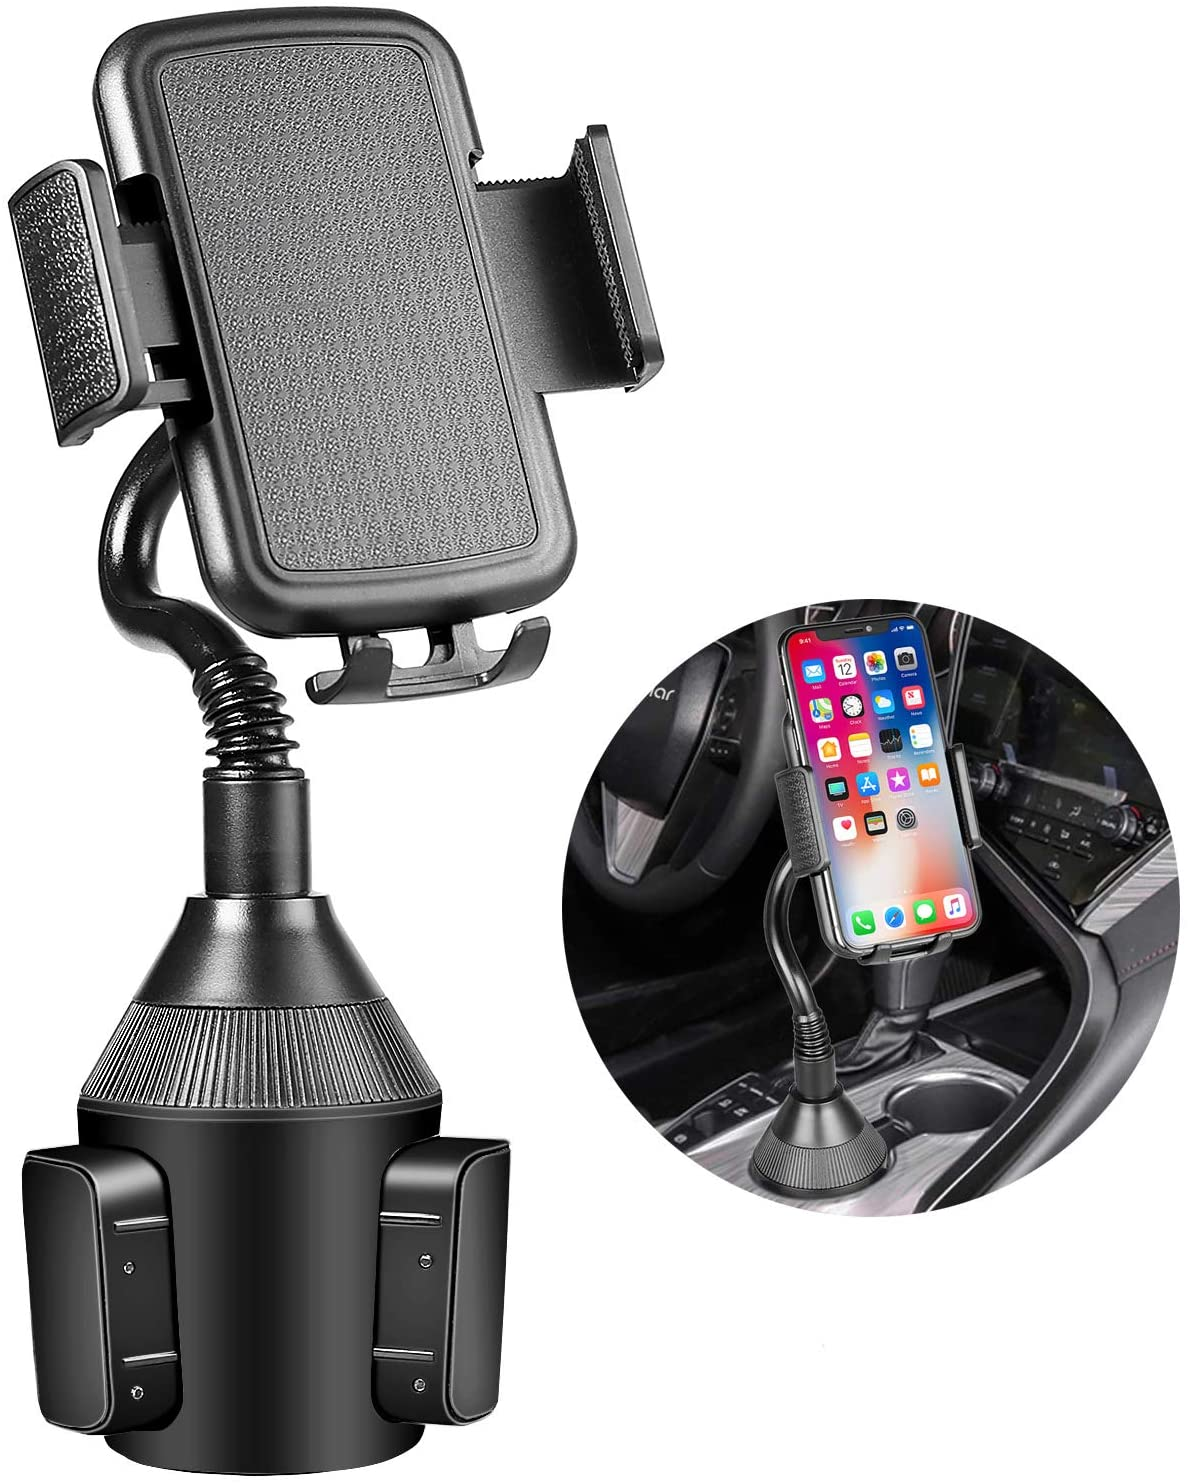 Car Cup Holder Phone Mount,Universal Adjustable Gooseneck Automobile Cell Phone Cradle Mount for iPhone 11 pro/Xs/Max/X/XR/8/7/6 Plus Samsung Galaxy S10/S9/S8 Note 9 and All Smartphones (Long Neck)